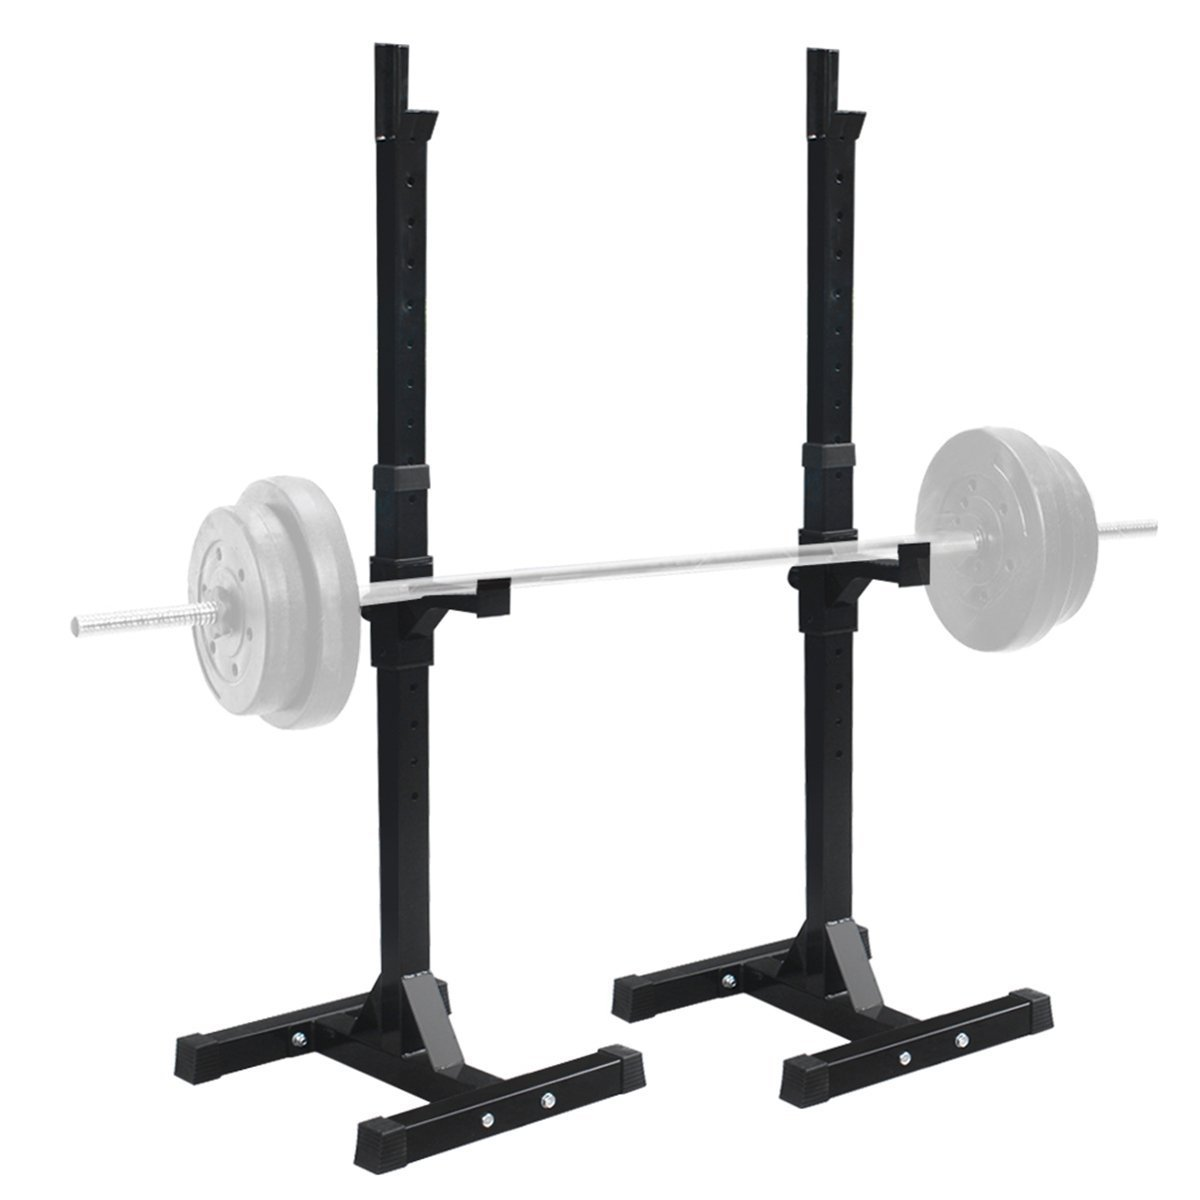 Smartxchoices Barbell Stand Adjustable Solid Steel Barbell Stand Pair of Barbell Racks Home Gym Portable Dumbbell Racks (one pair/two pcs) by Smartxchoices